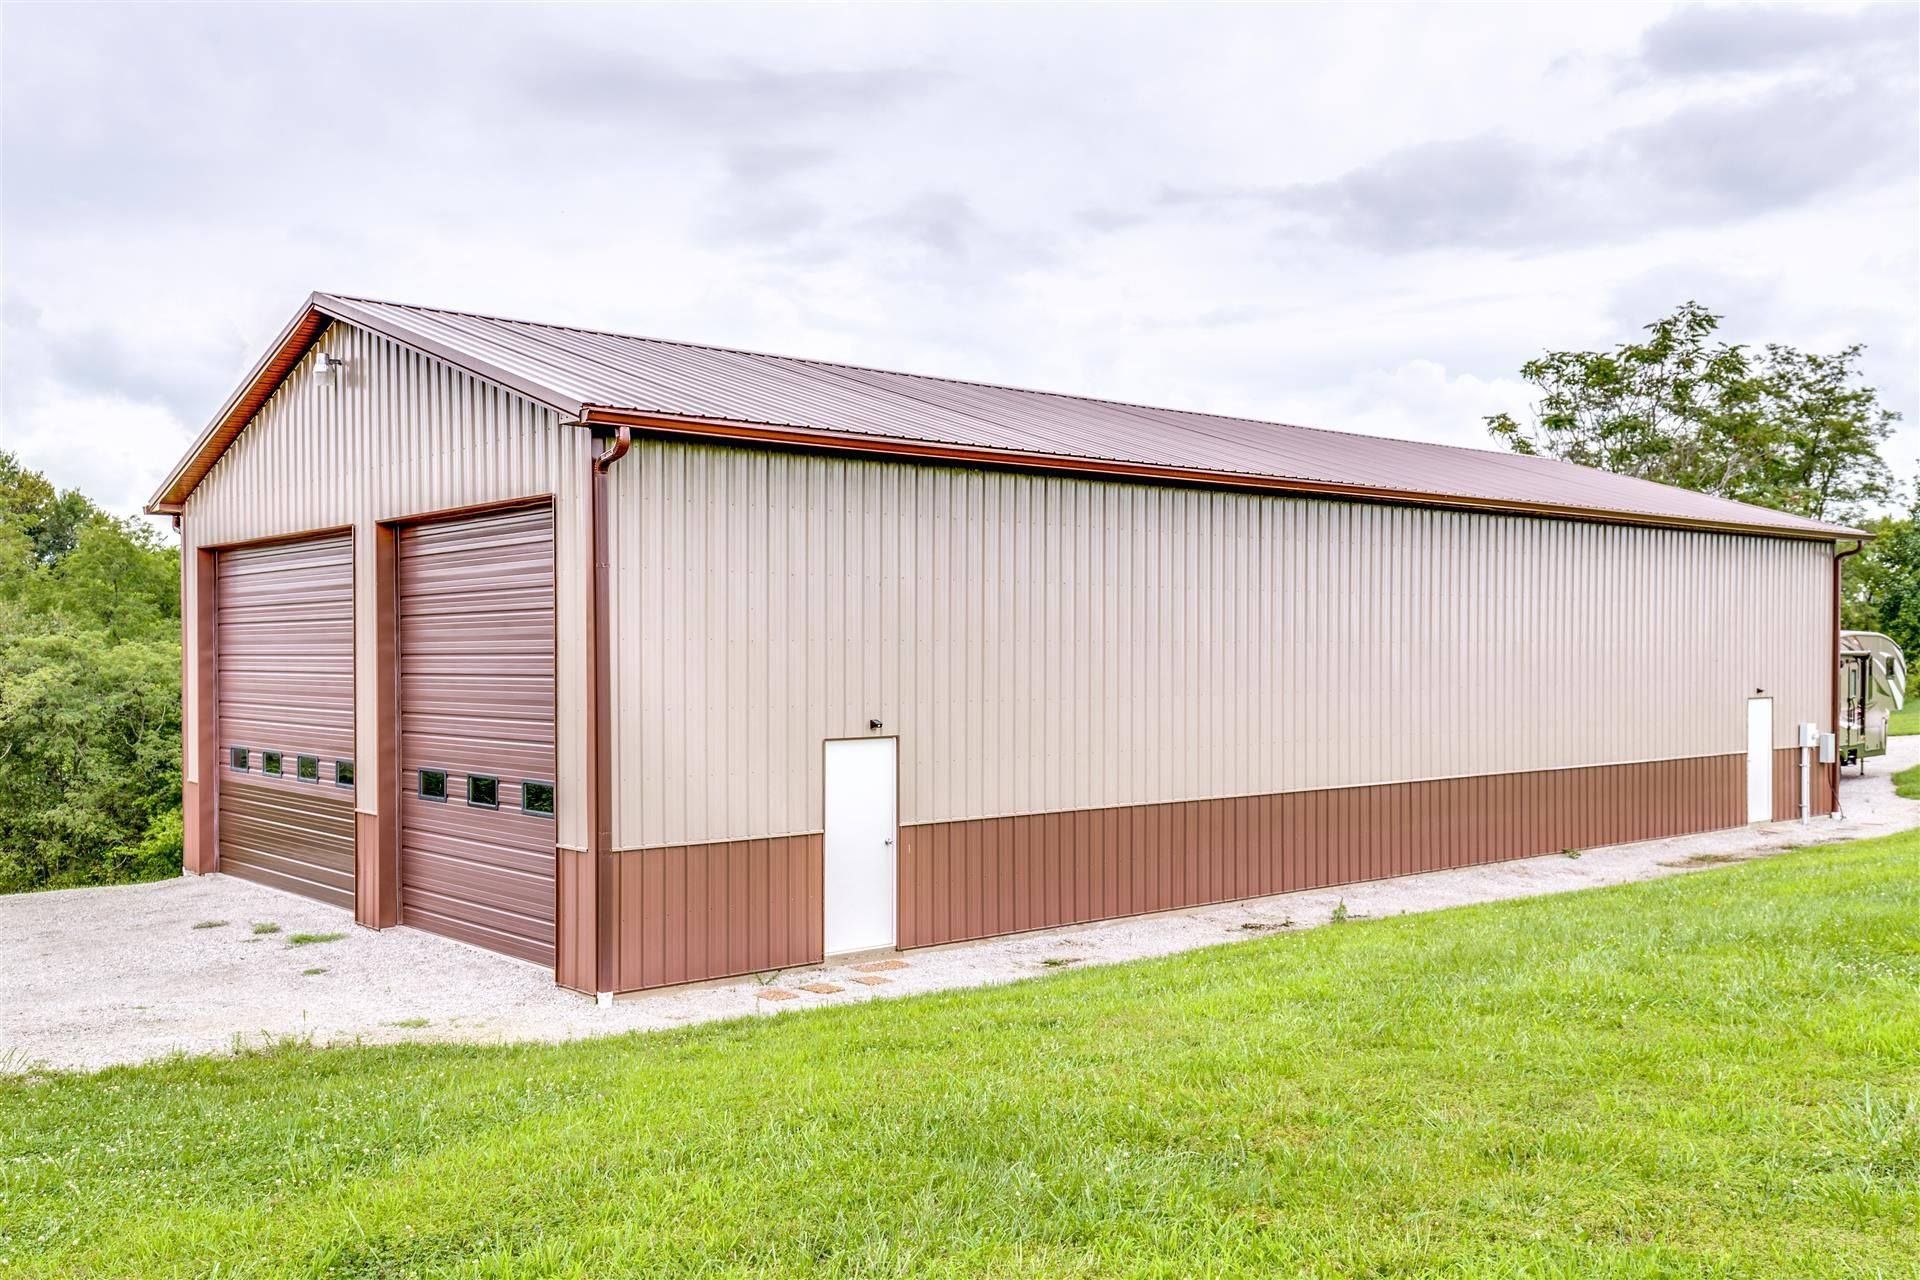 Mid Western Buildings manufacturing plete packages for pole barns